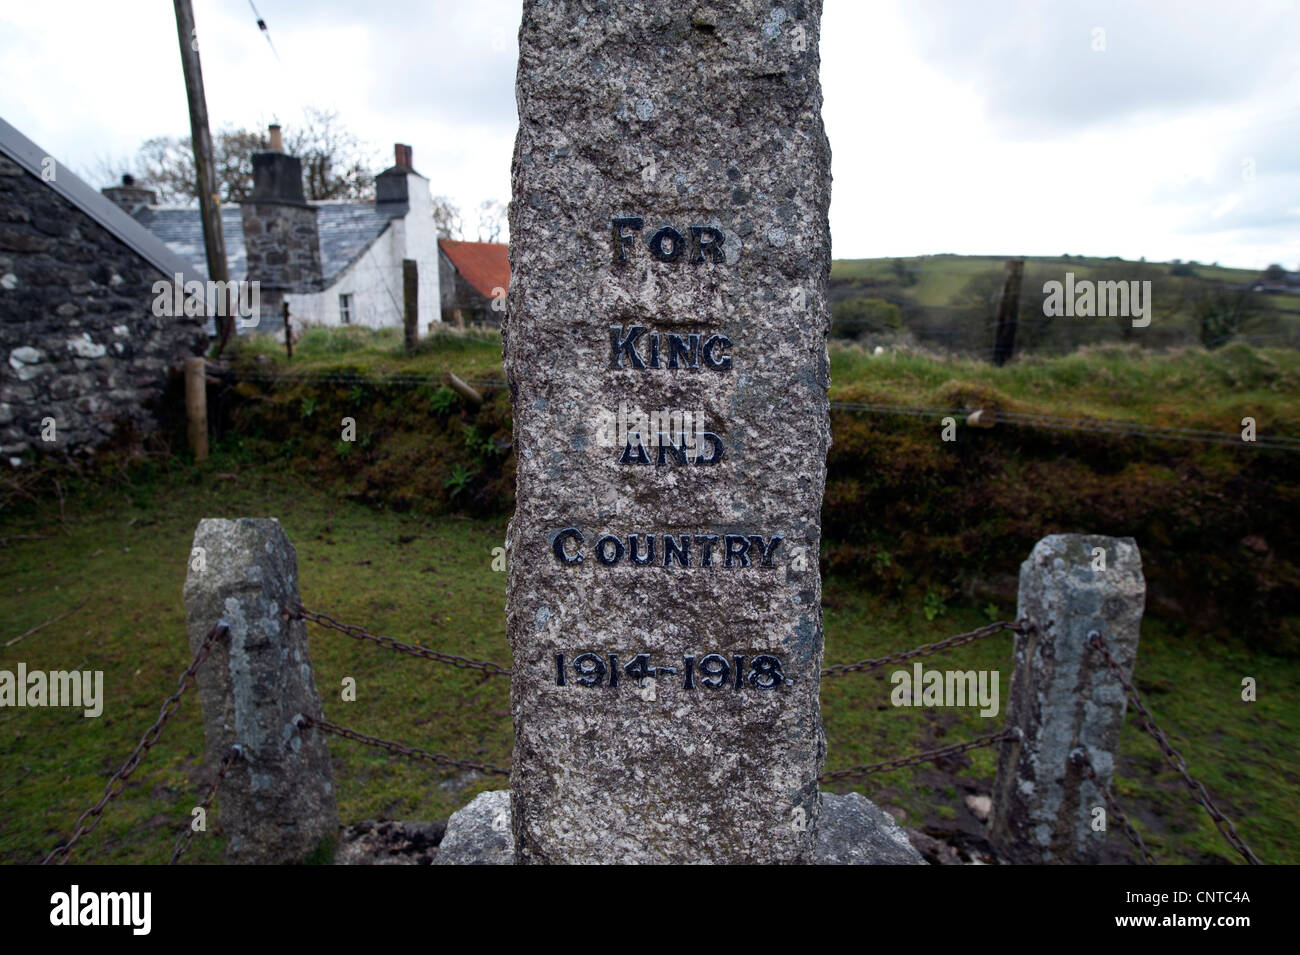 Bodmin Moor, The Hamlet of Temple, Cornwall, England,UK. April 2012. - Stock Image